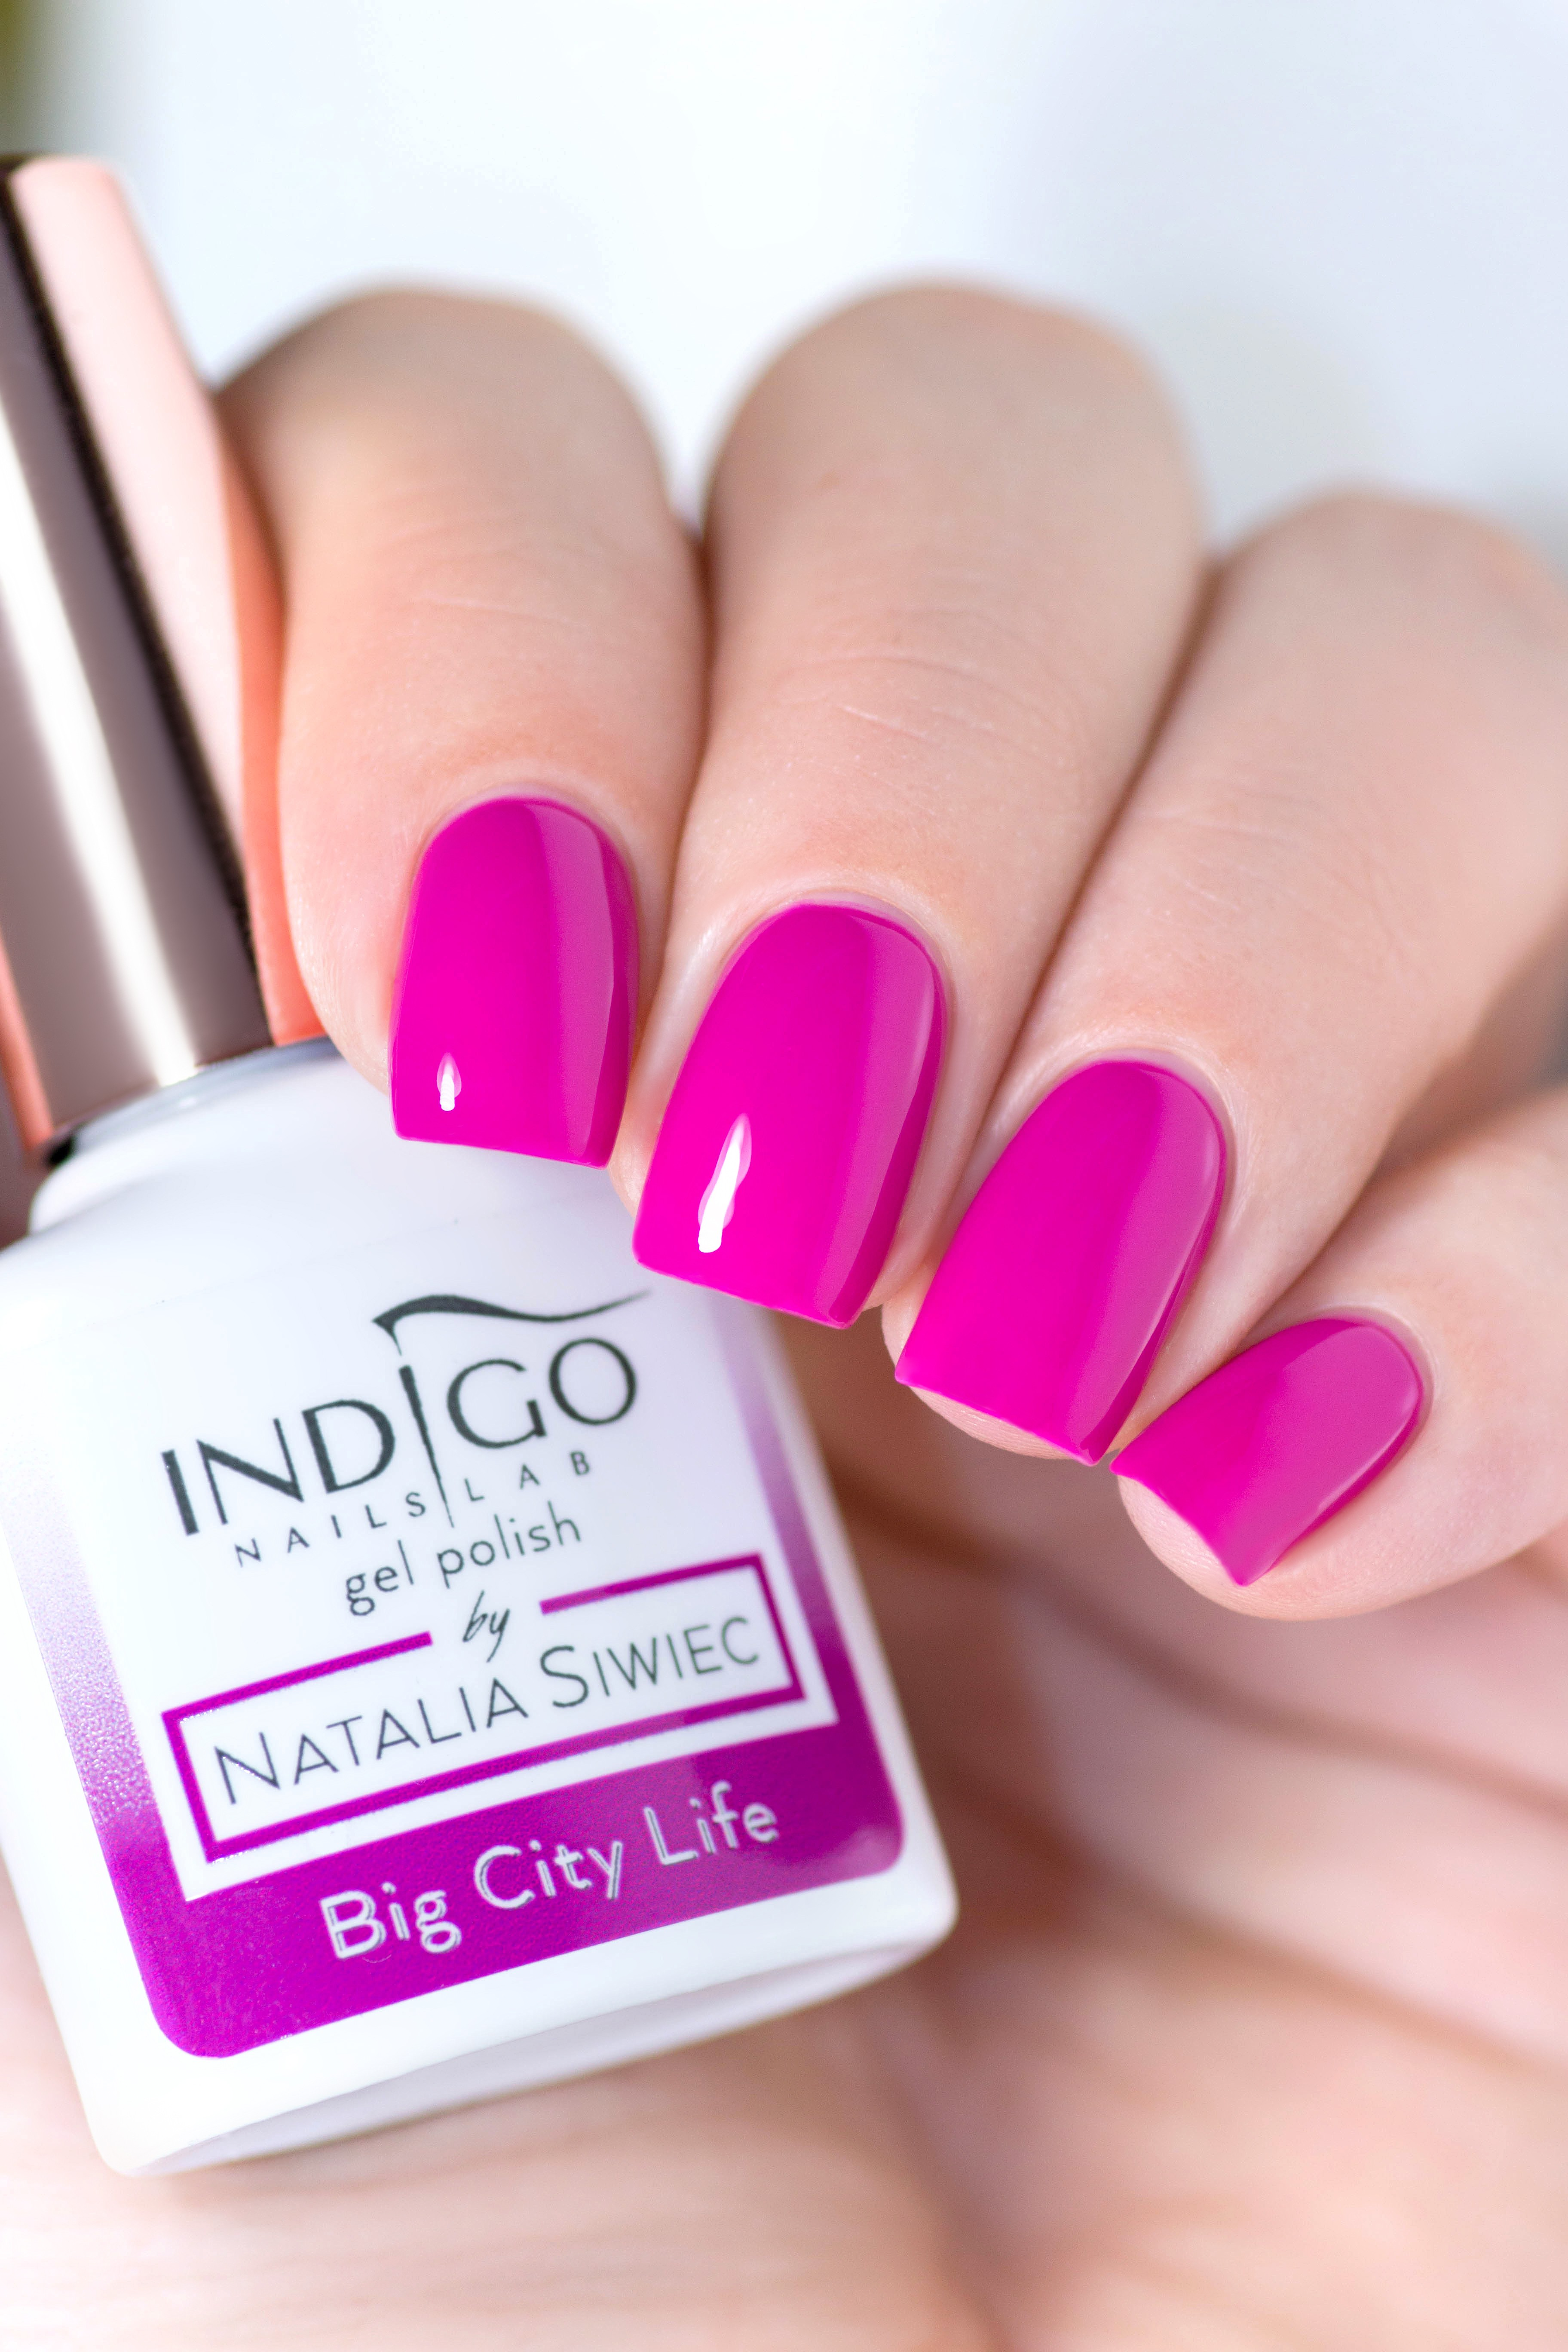 Big City Life Gel Polish By Natalia Siwiec Indigo